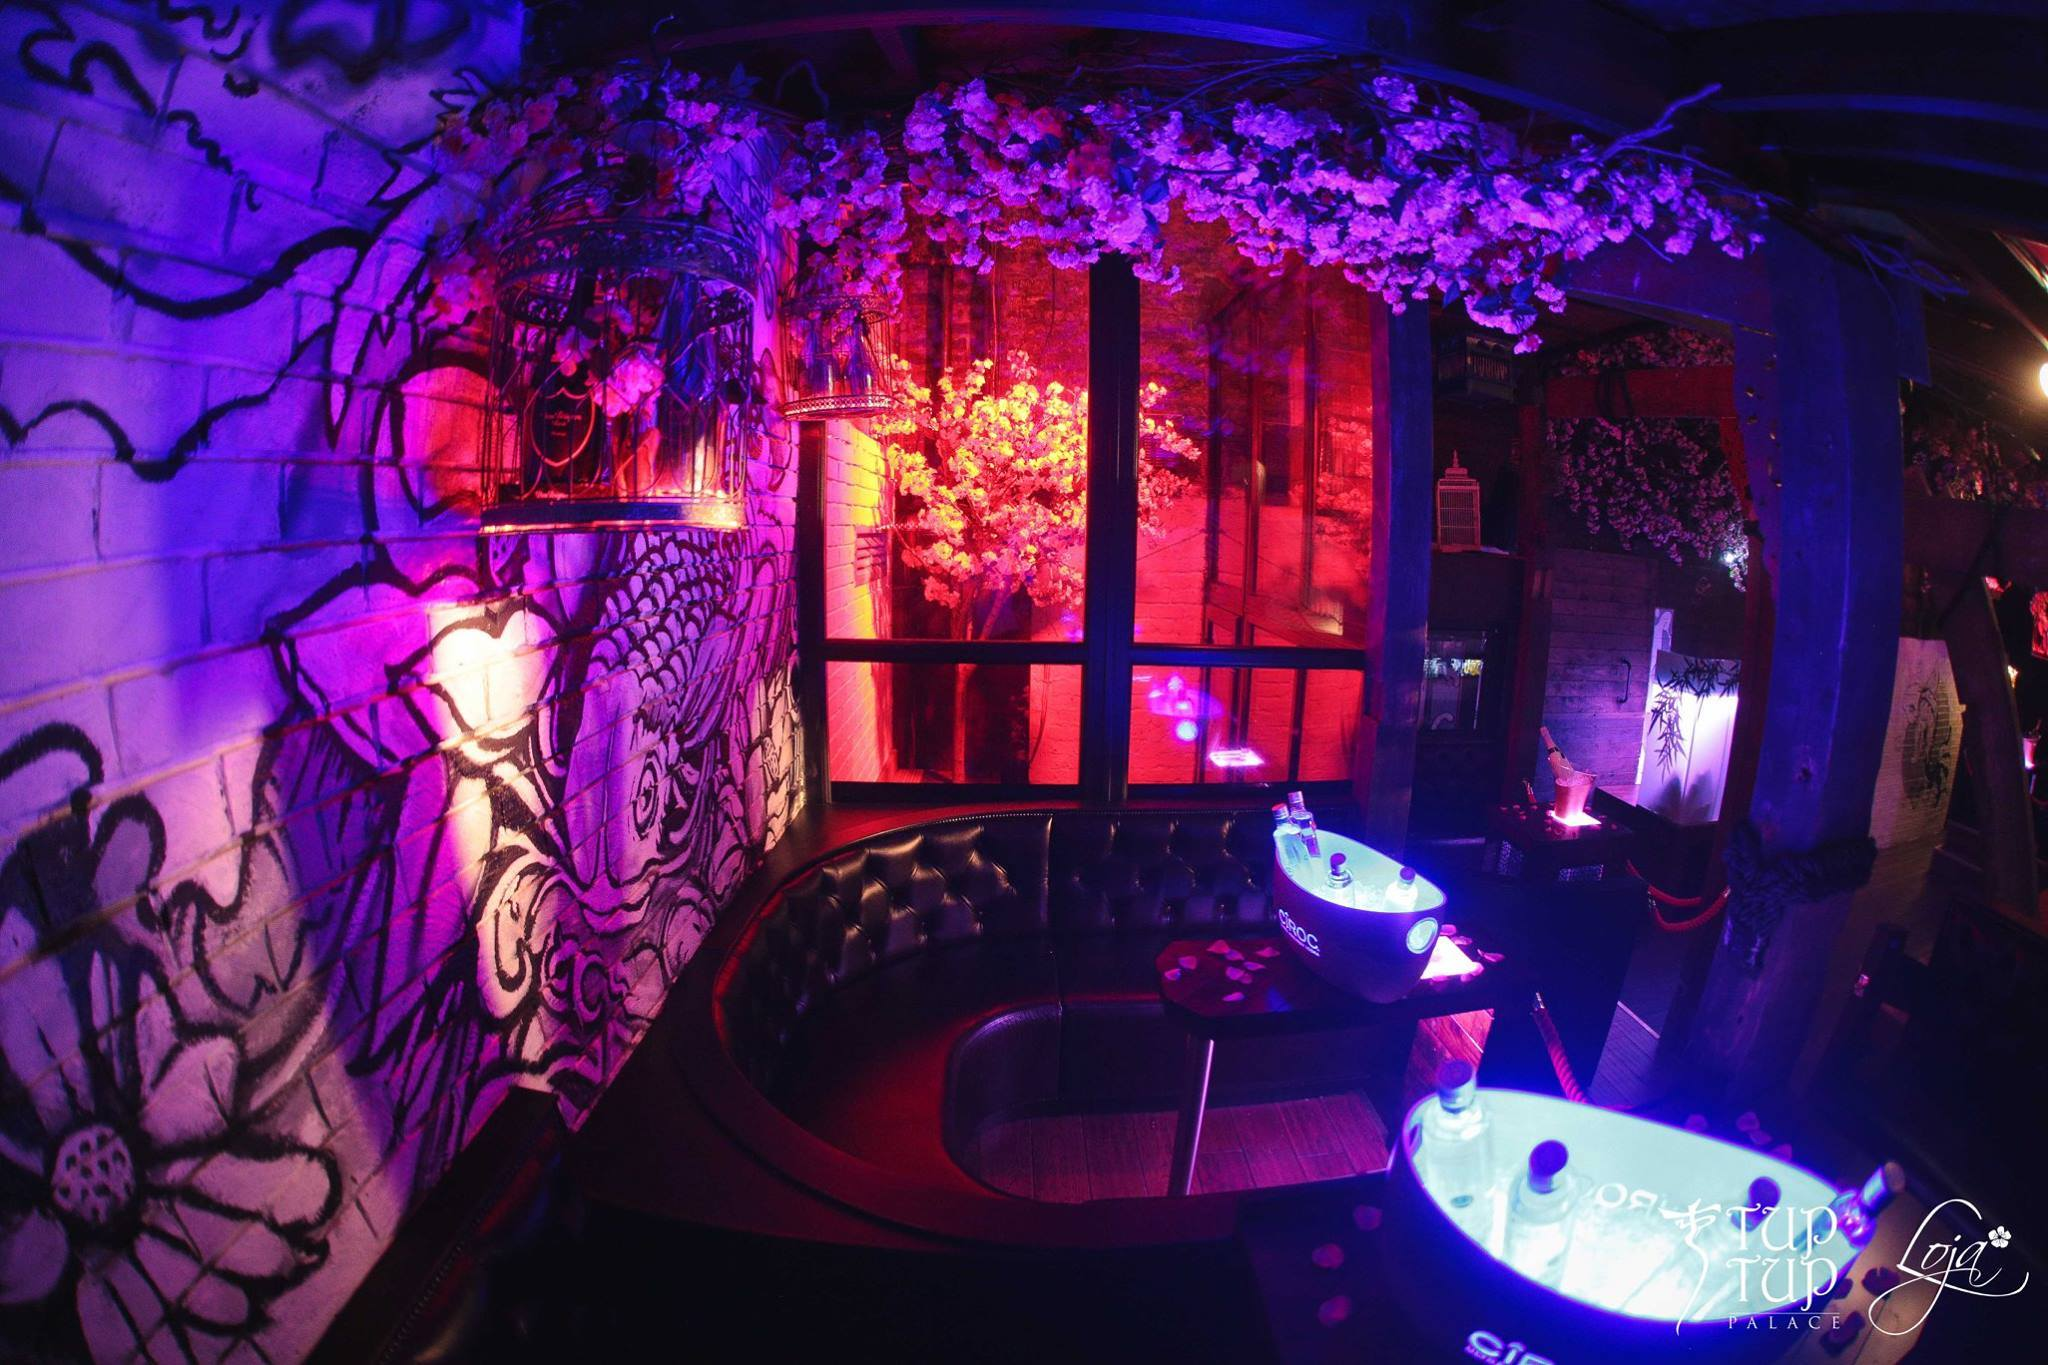 Tup Tup Palace's secret bar, Loja, interiors